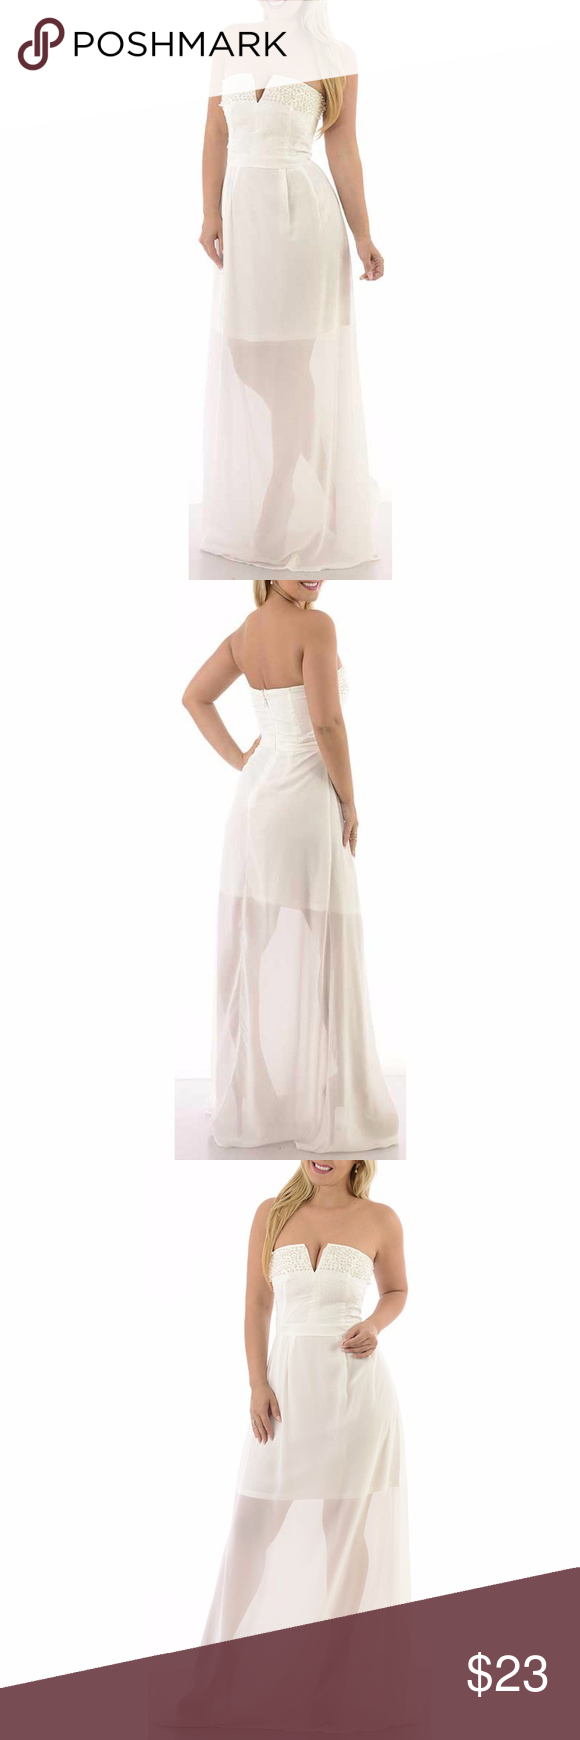 Wedding dresses for small bust  White Long Strapless Wedding Gown Dress maxi Ium u D  Waist